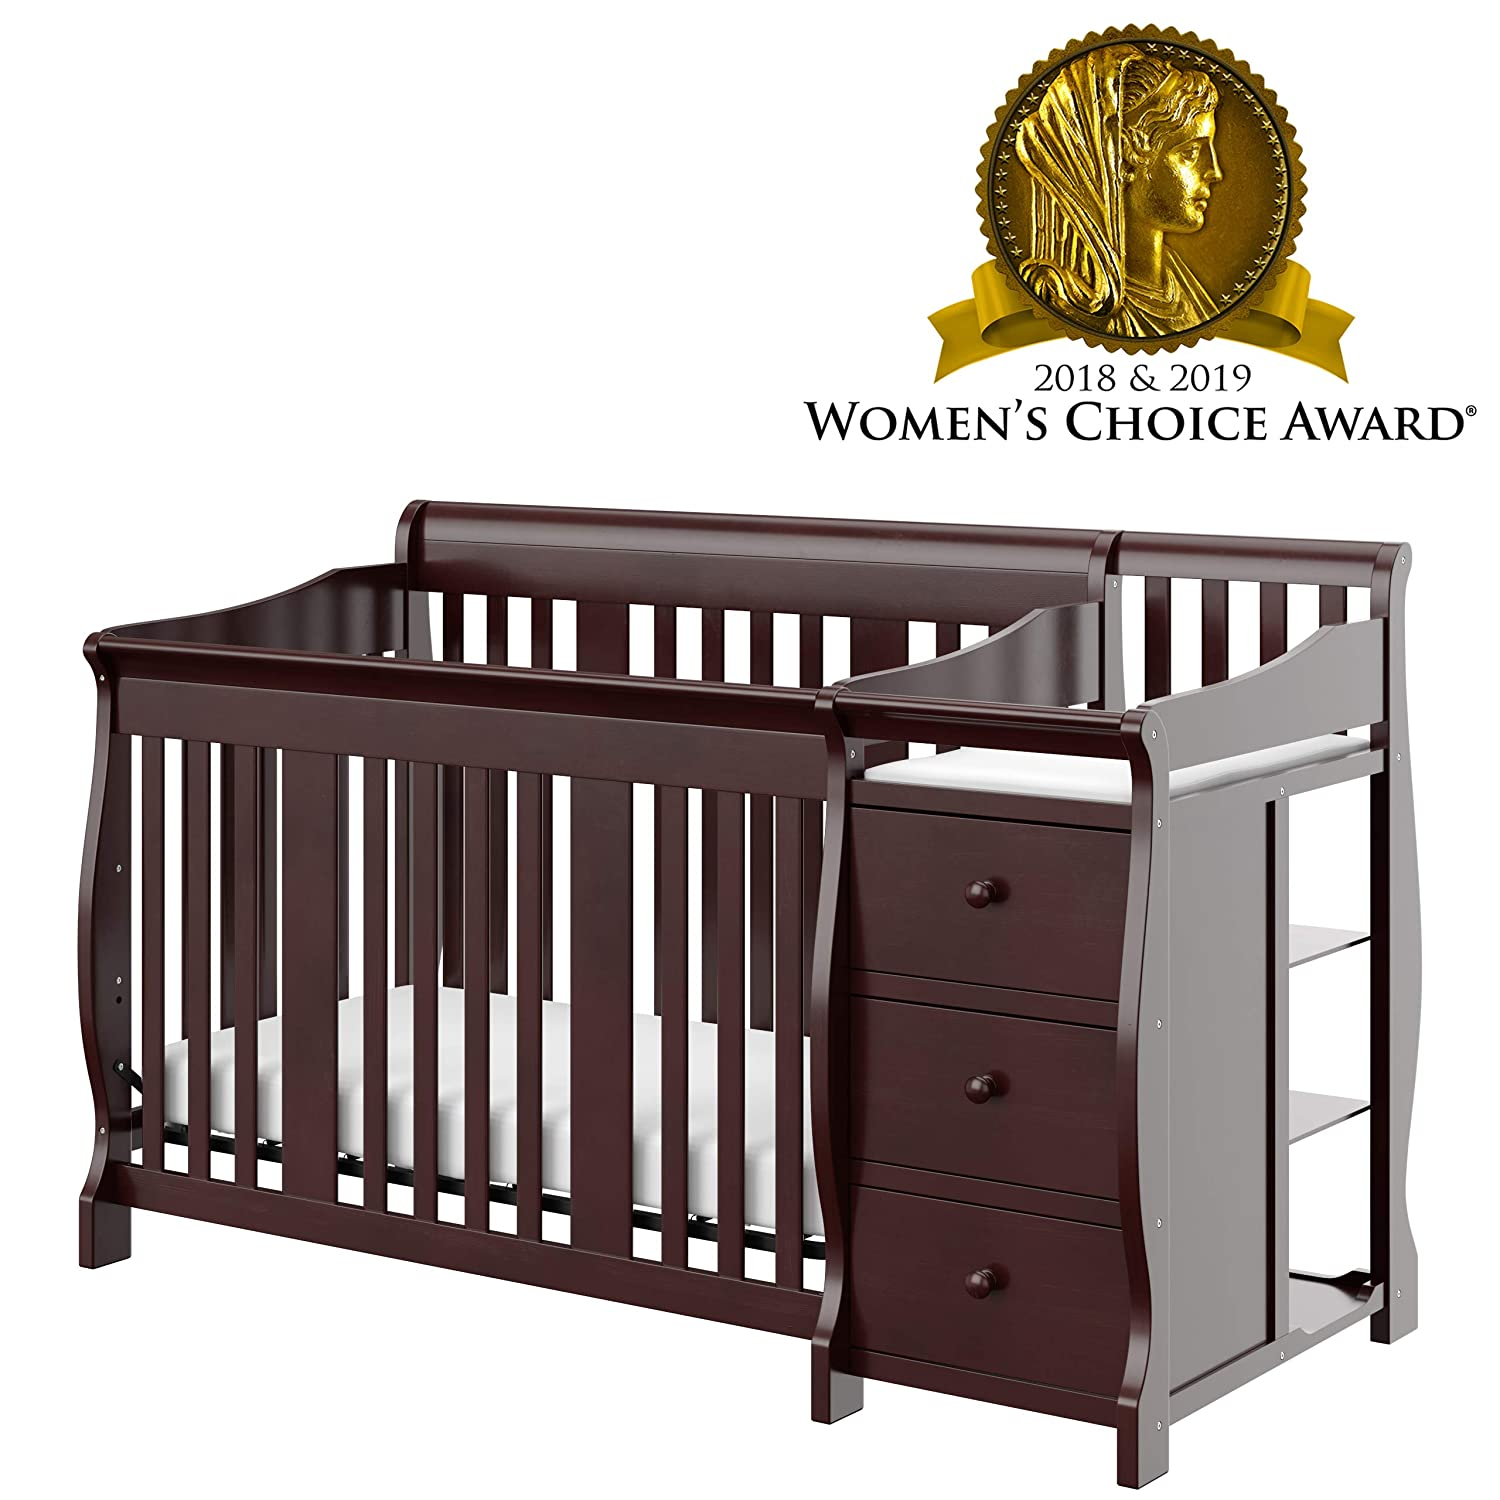 Storkcraft Portofino 4-in-1 Fixed Side Convertible Crib and Changer, Espresso, Easily Converts to Toddler Bed Day Bed or Full Bed, Three Position Adjustable Height Mattress Mattress Not Included